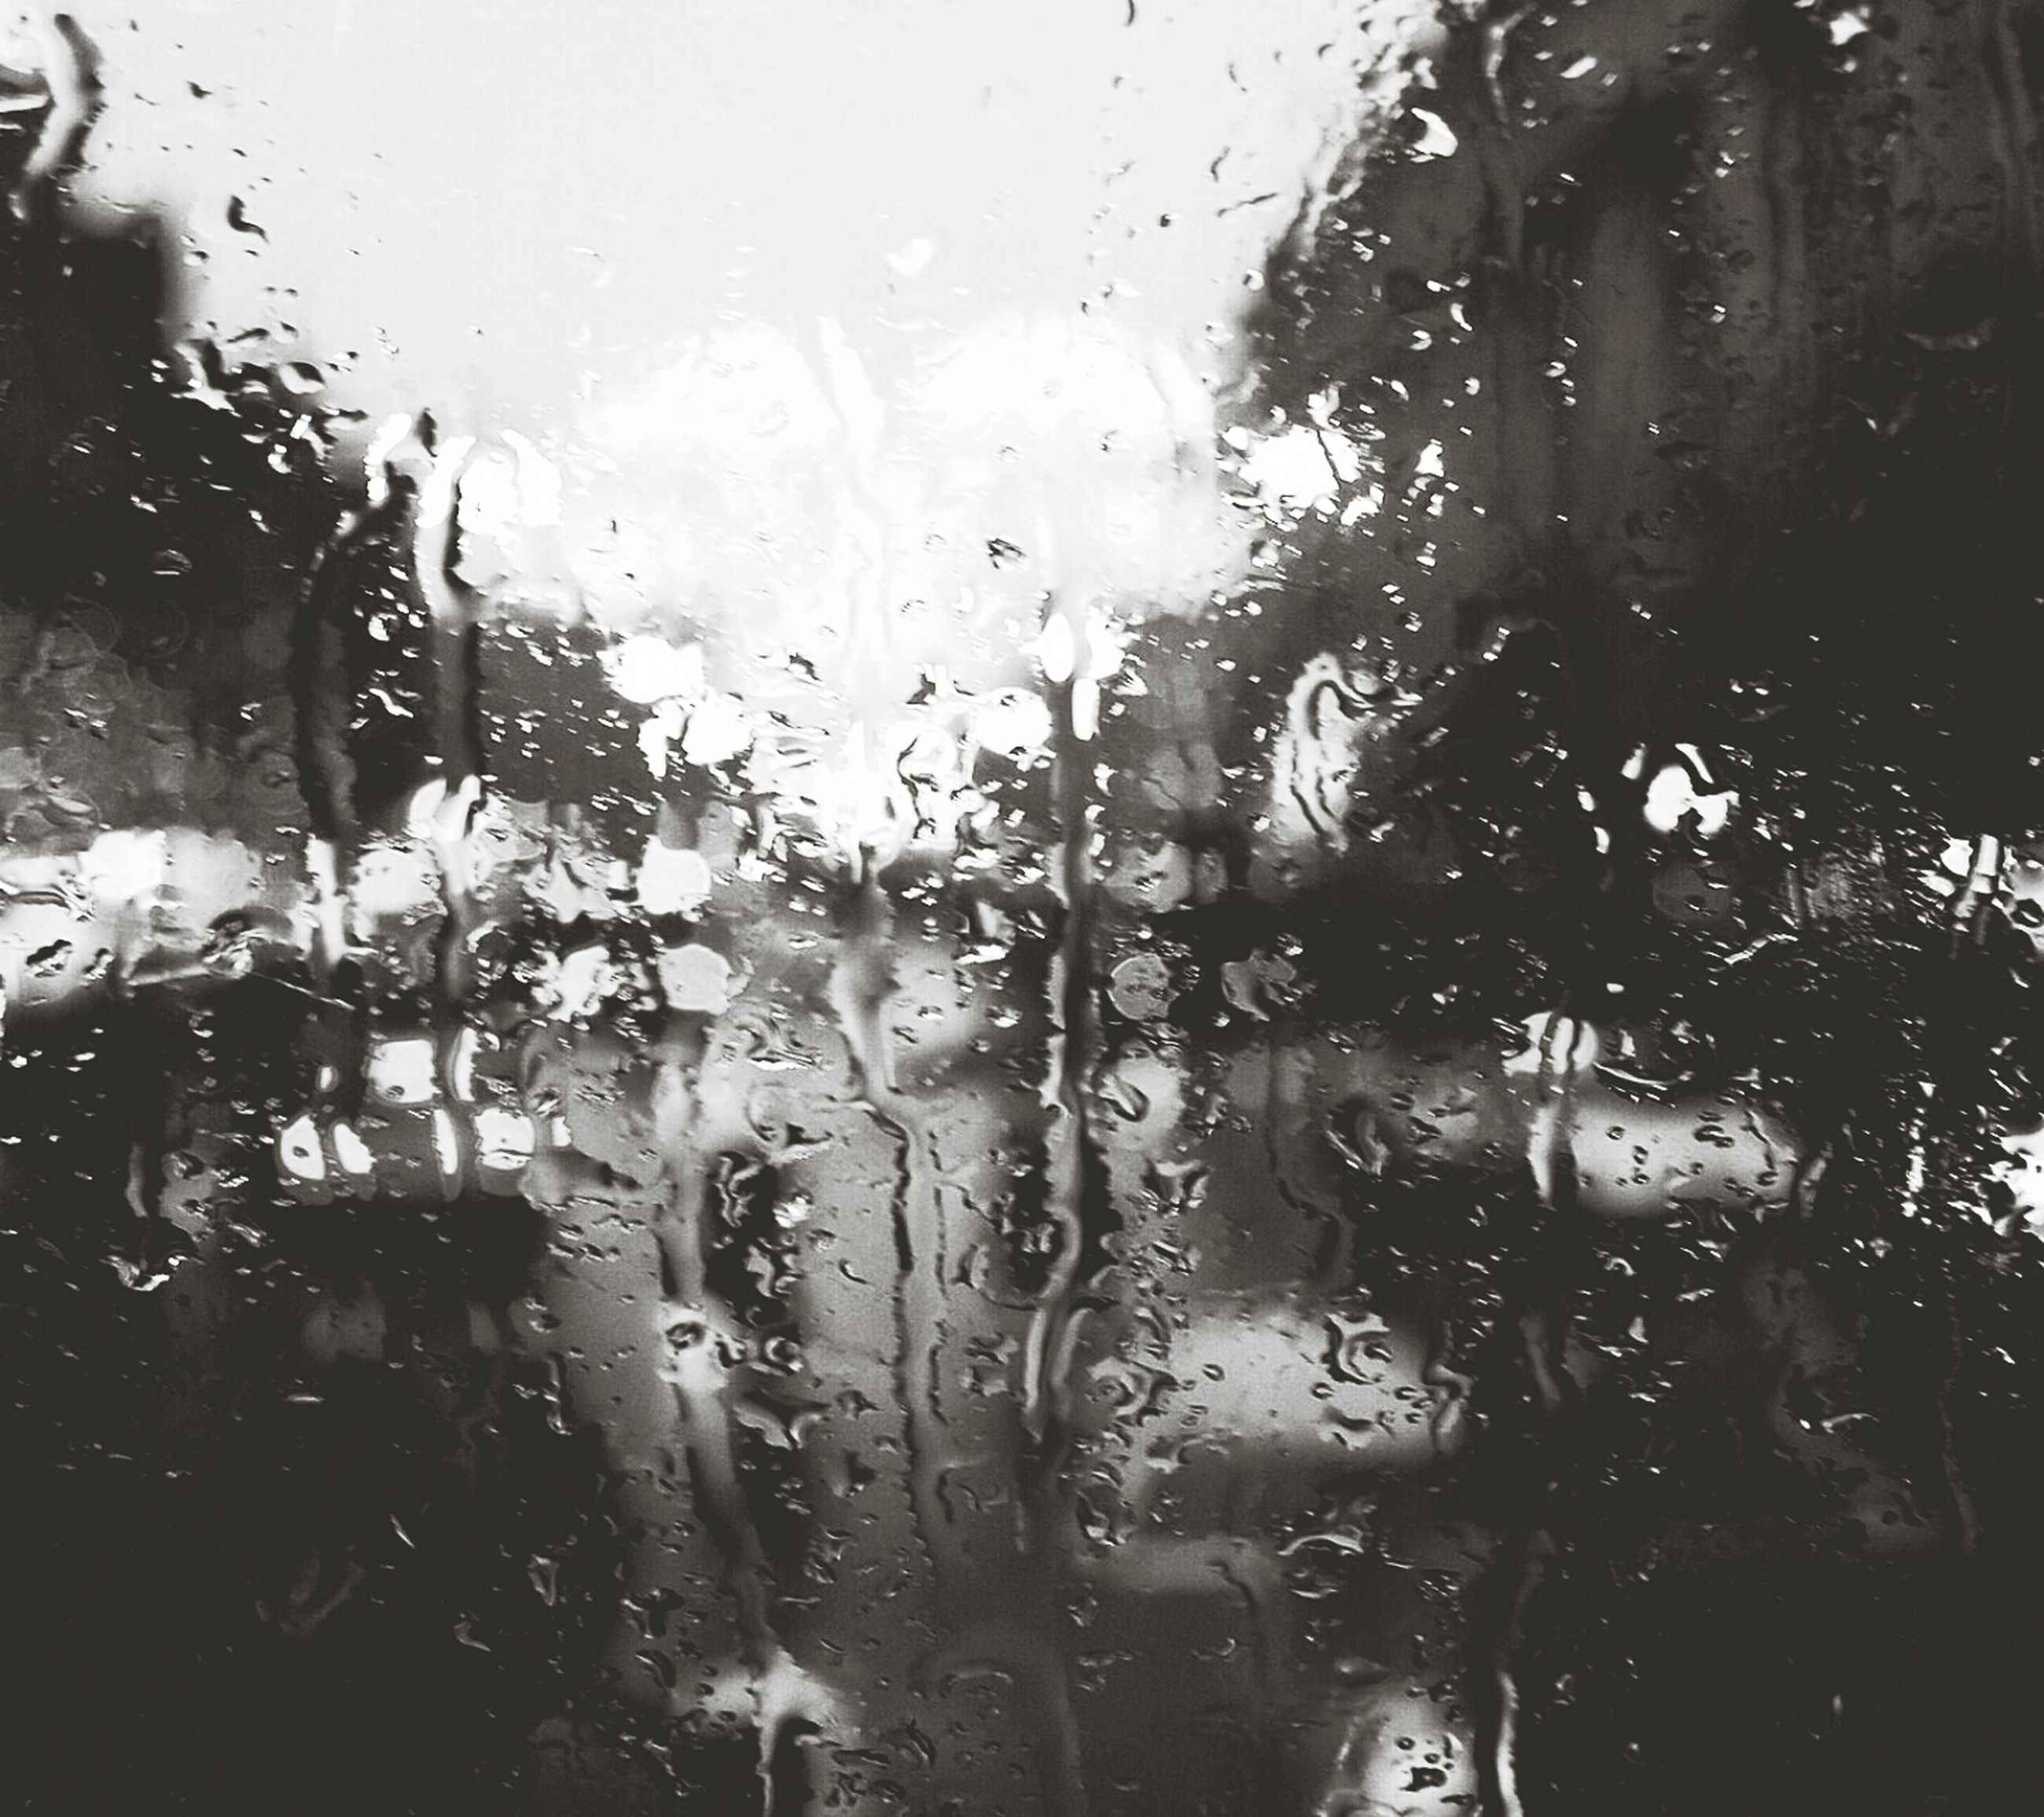 window, drop, transparent, indoors, wet, glass - material, rain, water, raindrop, glass, weather, full frame, season, tree, backgrounds, close-up, focus on foreground, sky, vehicle interior, no people